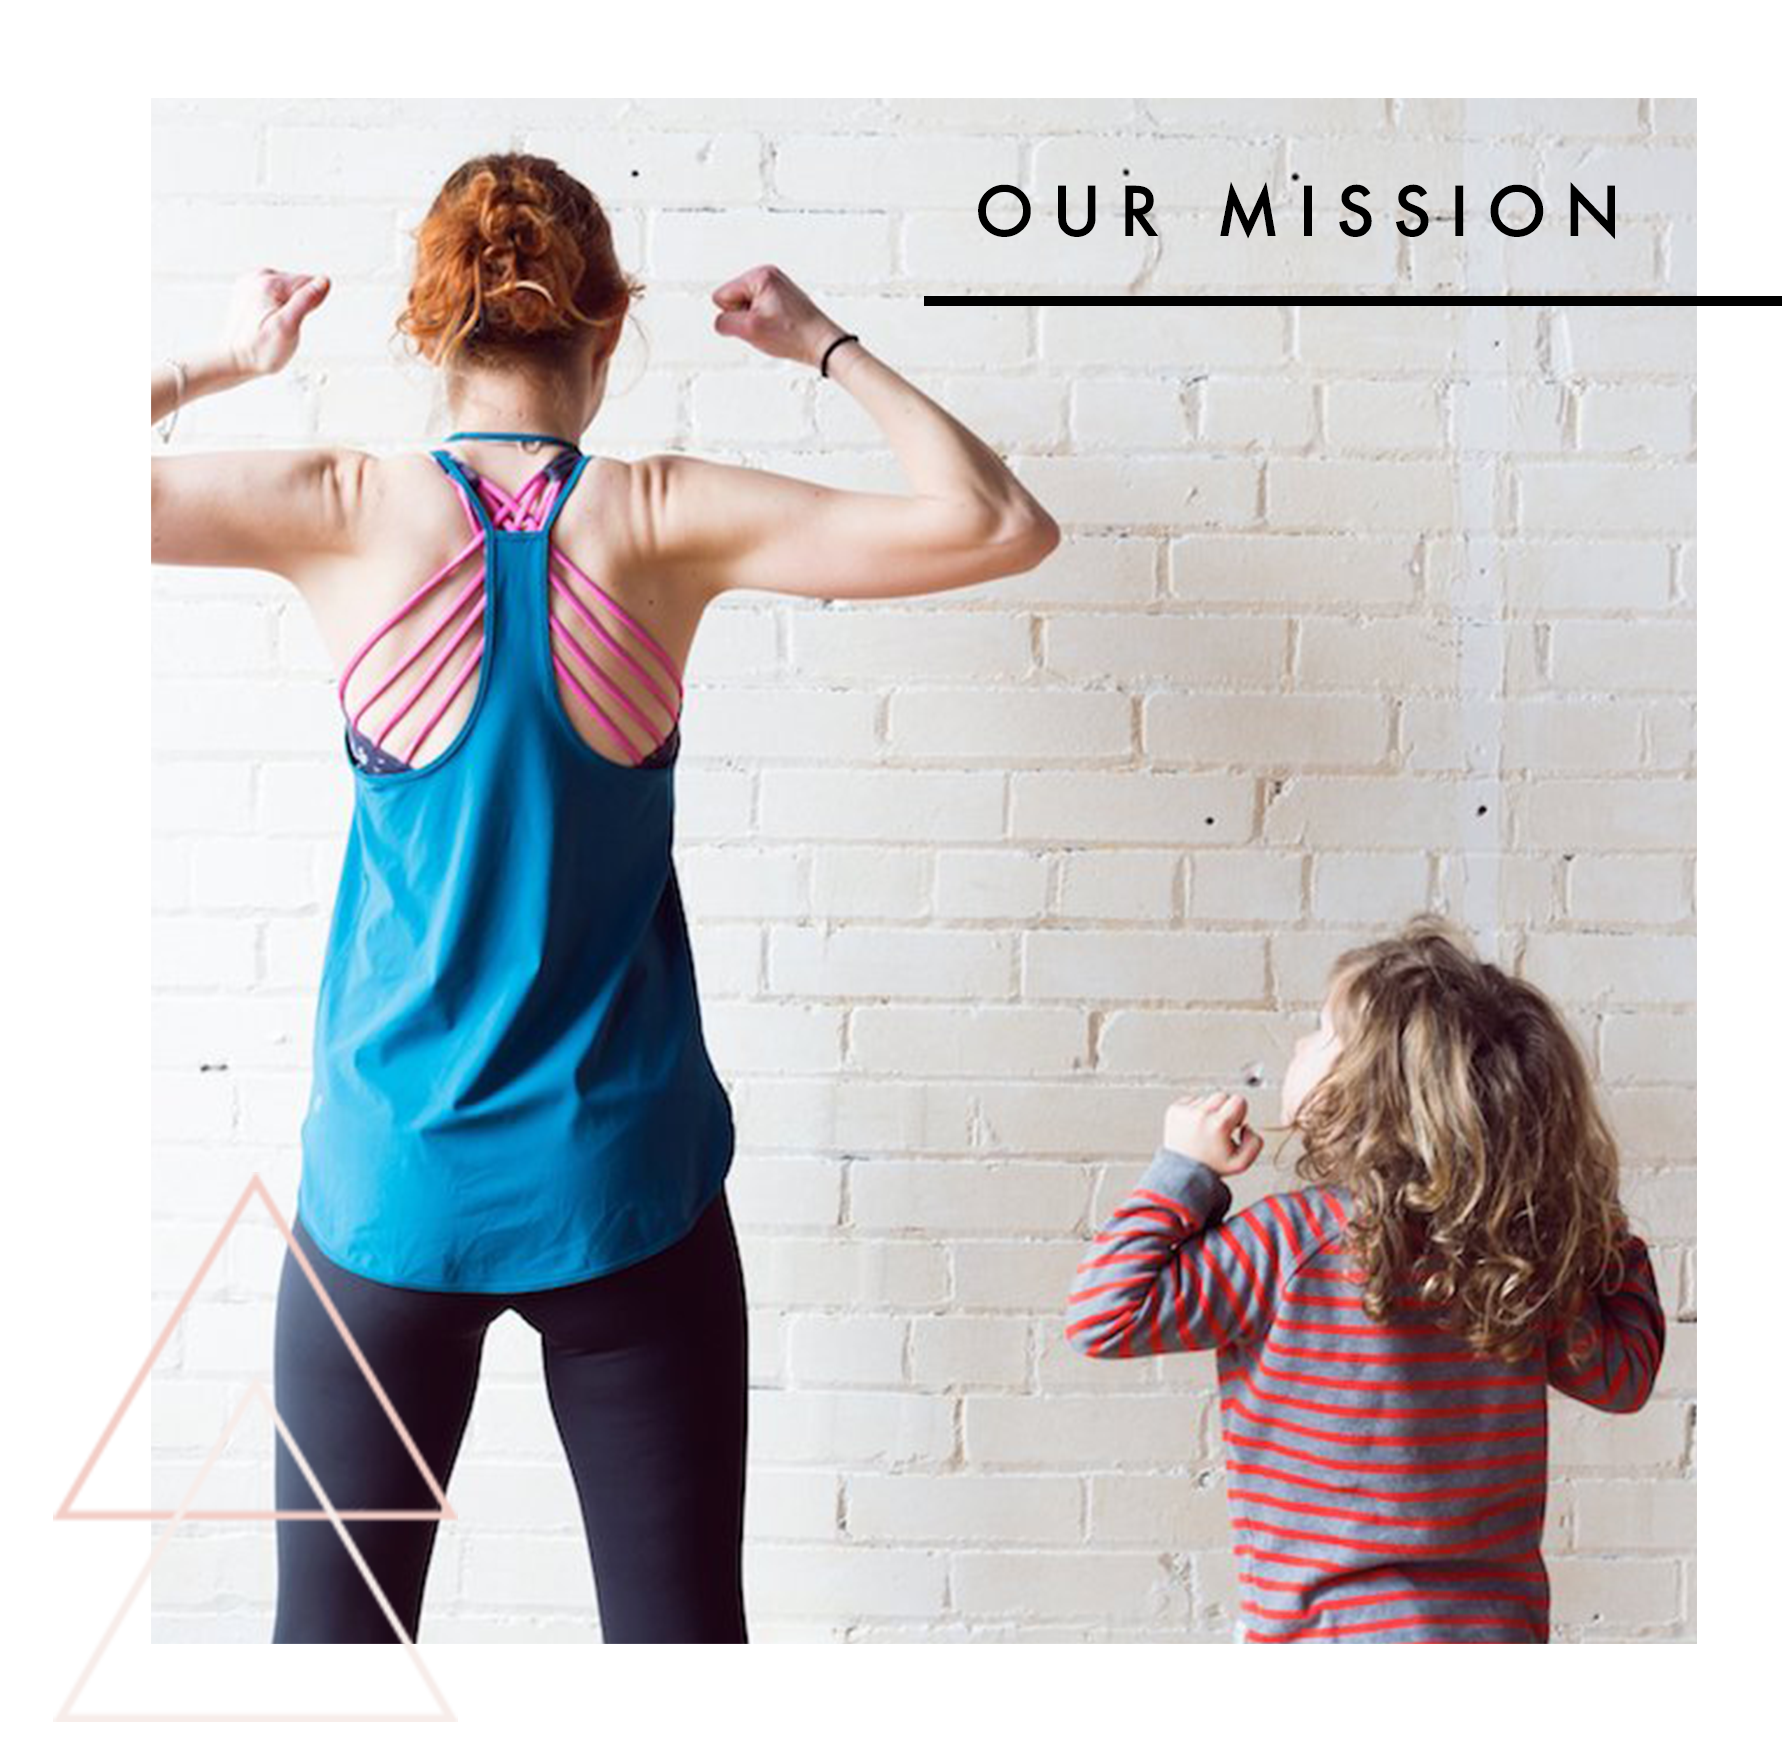 - We believe that a bright future begins with empowering  women and girls in our community. Our mission is to make a positive impact on the lives of women and girls; to help them through adversity; to help them feel beautiful, strong and impactful.